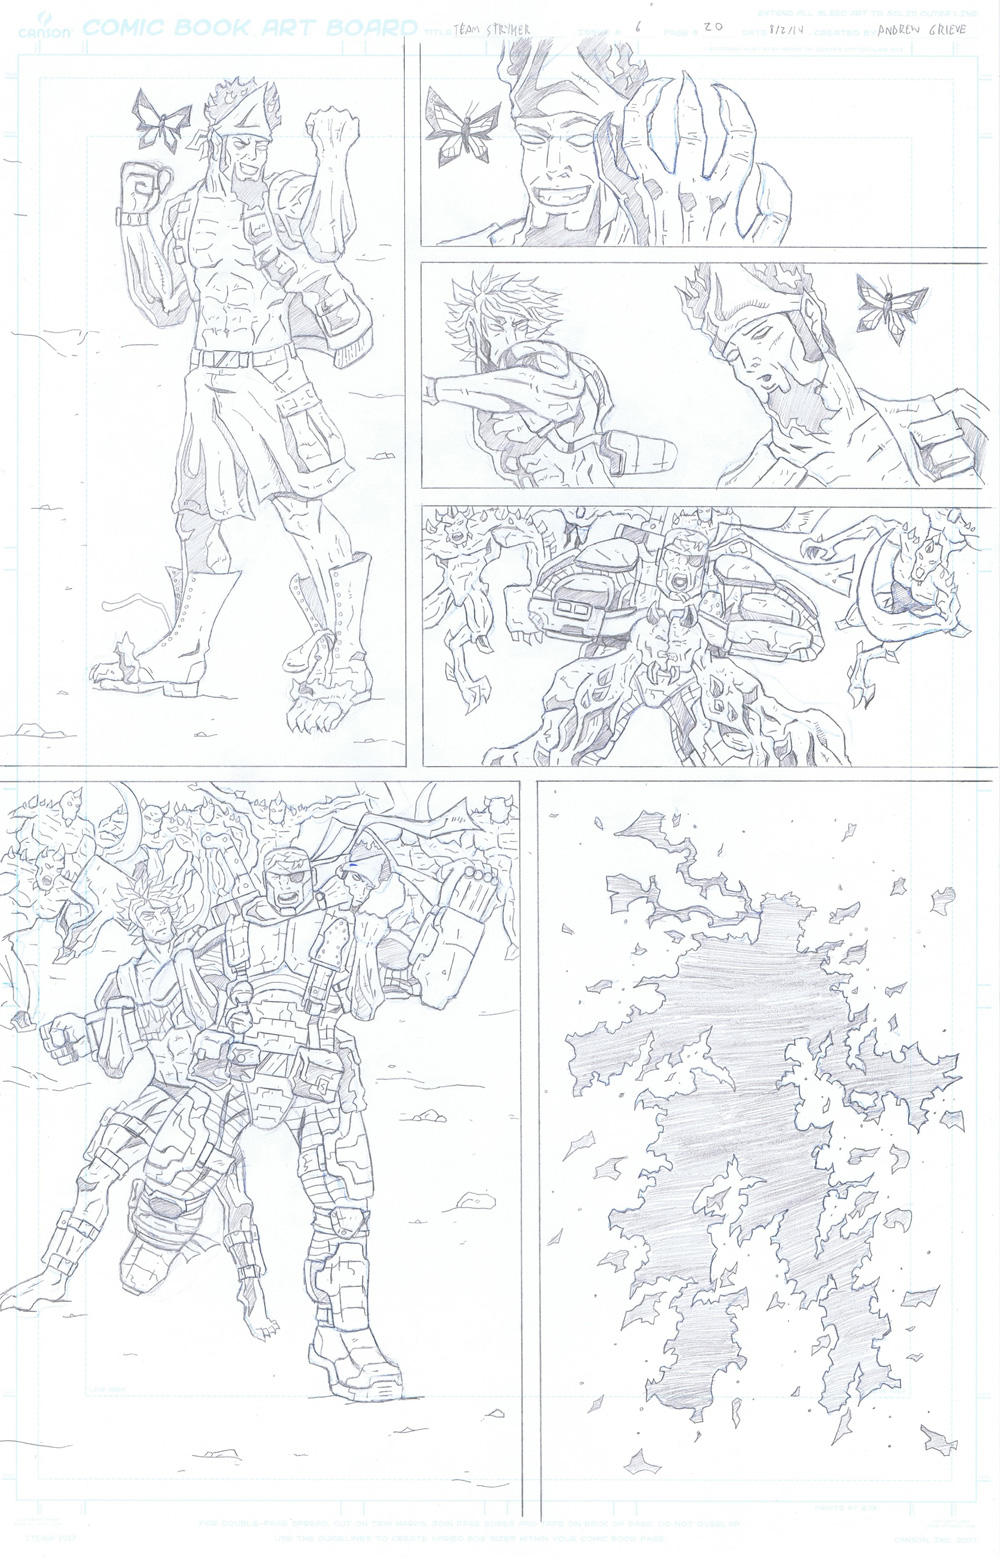 MISSION 006: PAGE 20 PENCIL